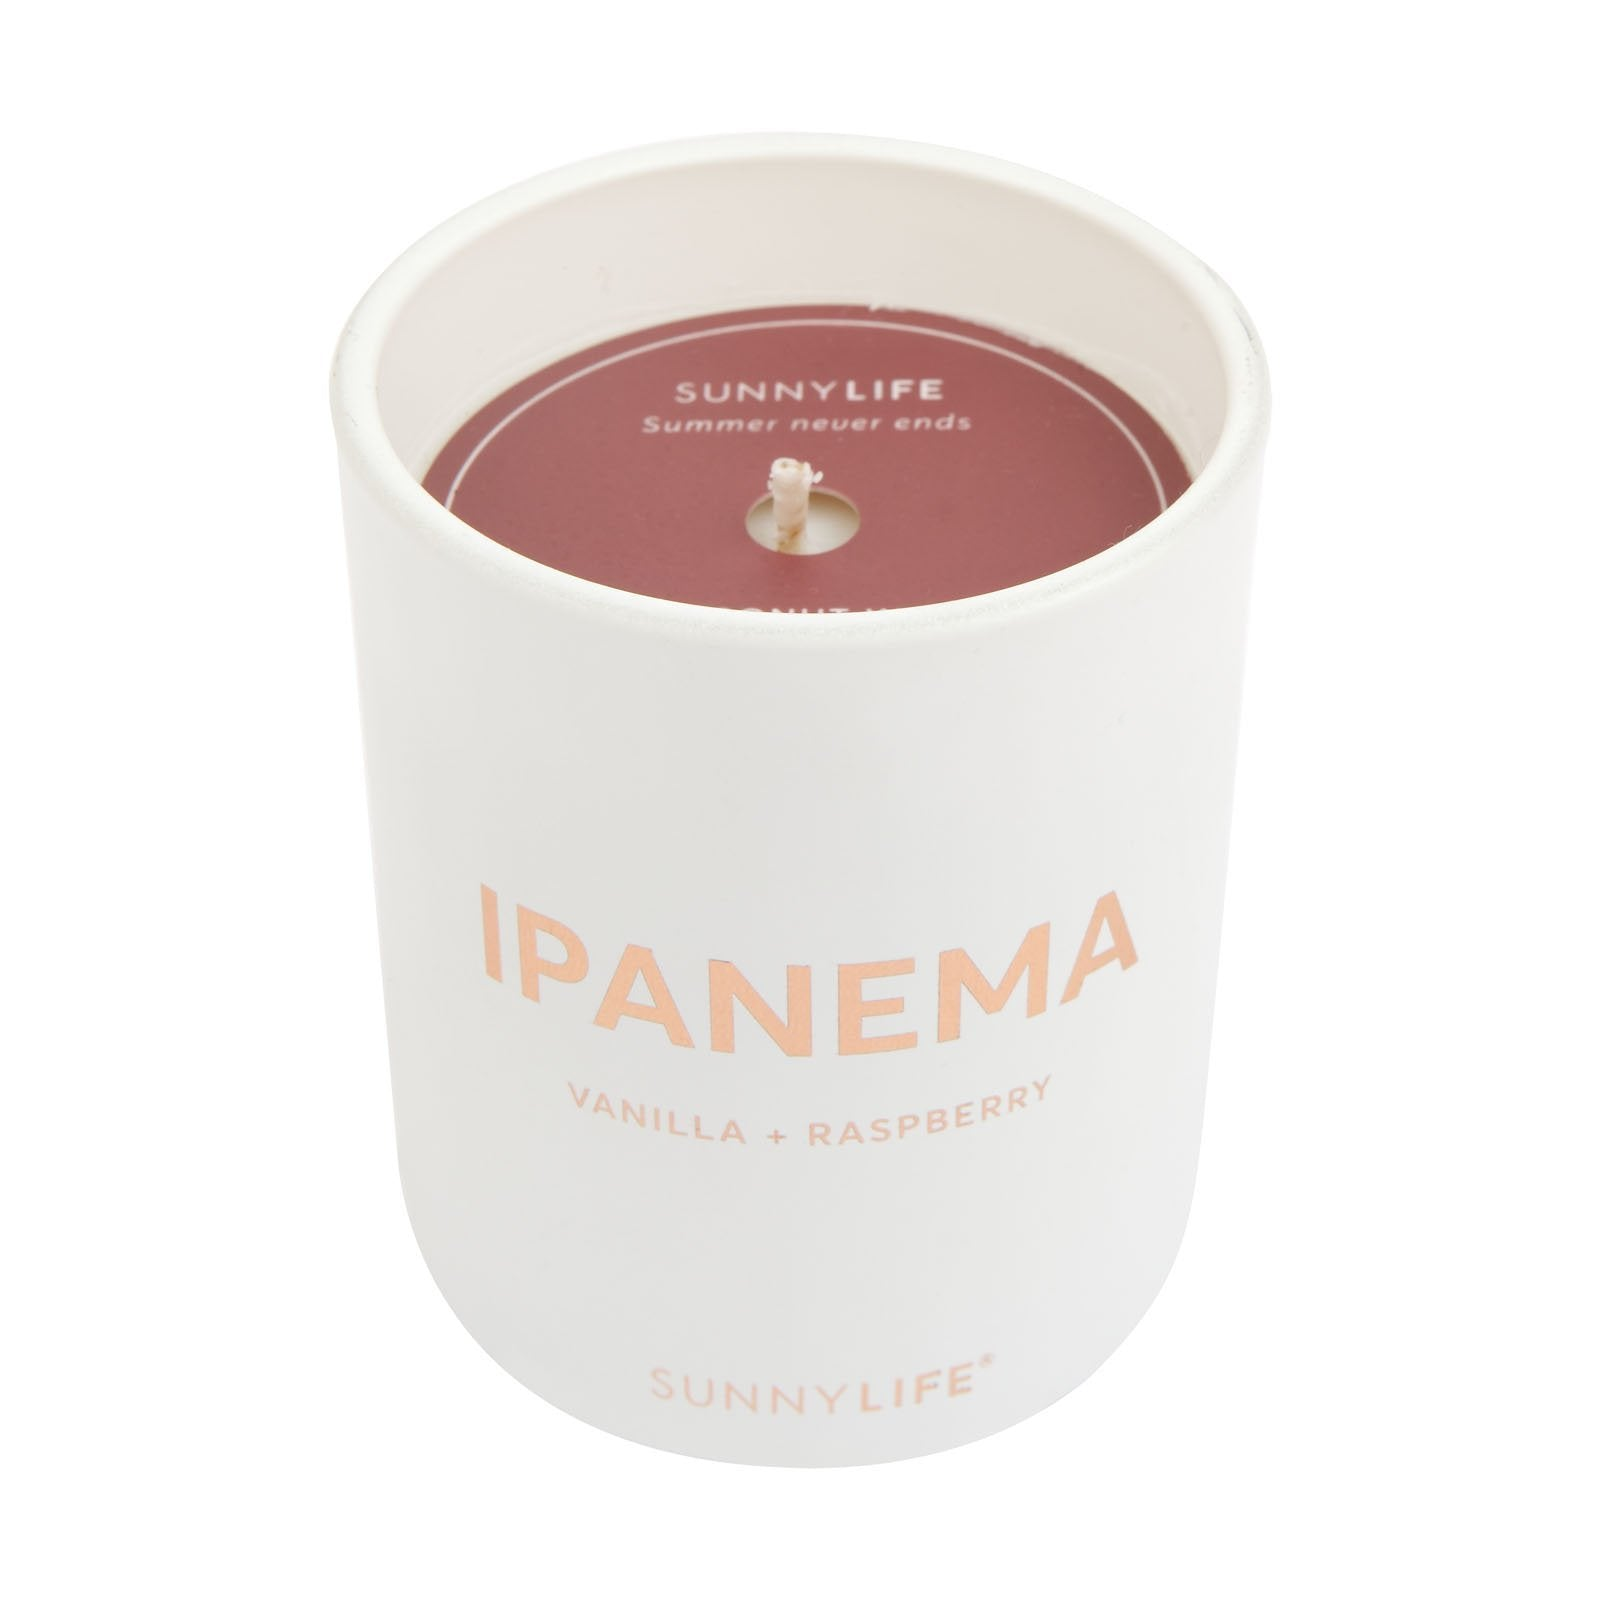 Sunnylife Scented Candle Small - Ipanema